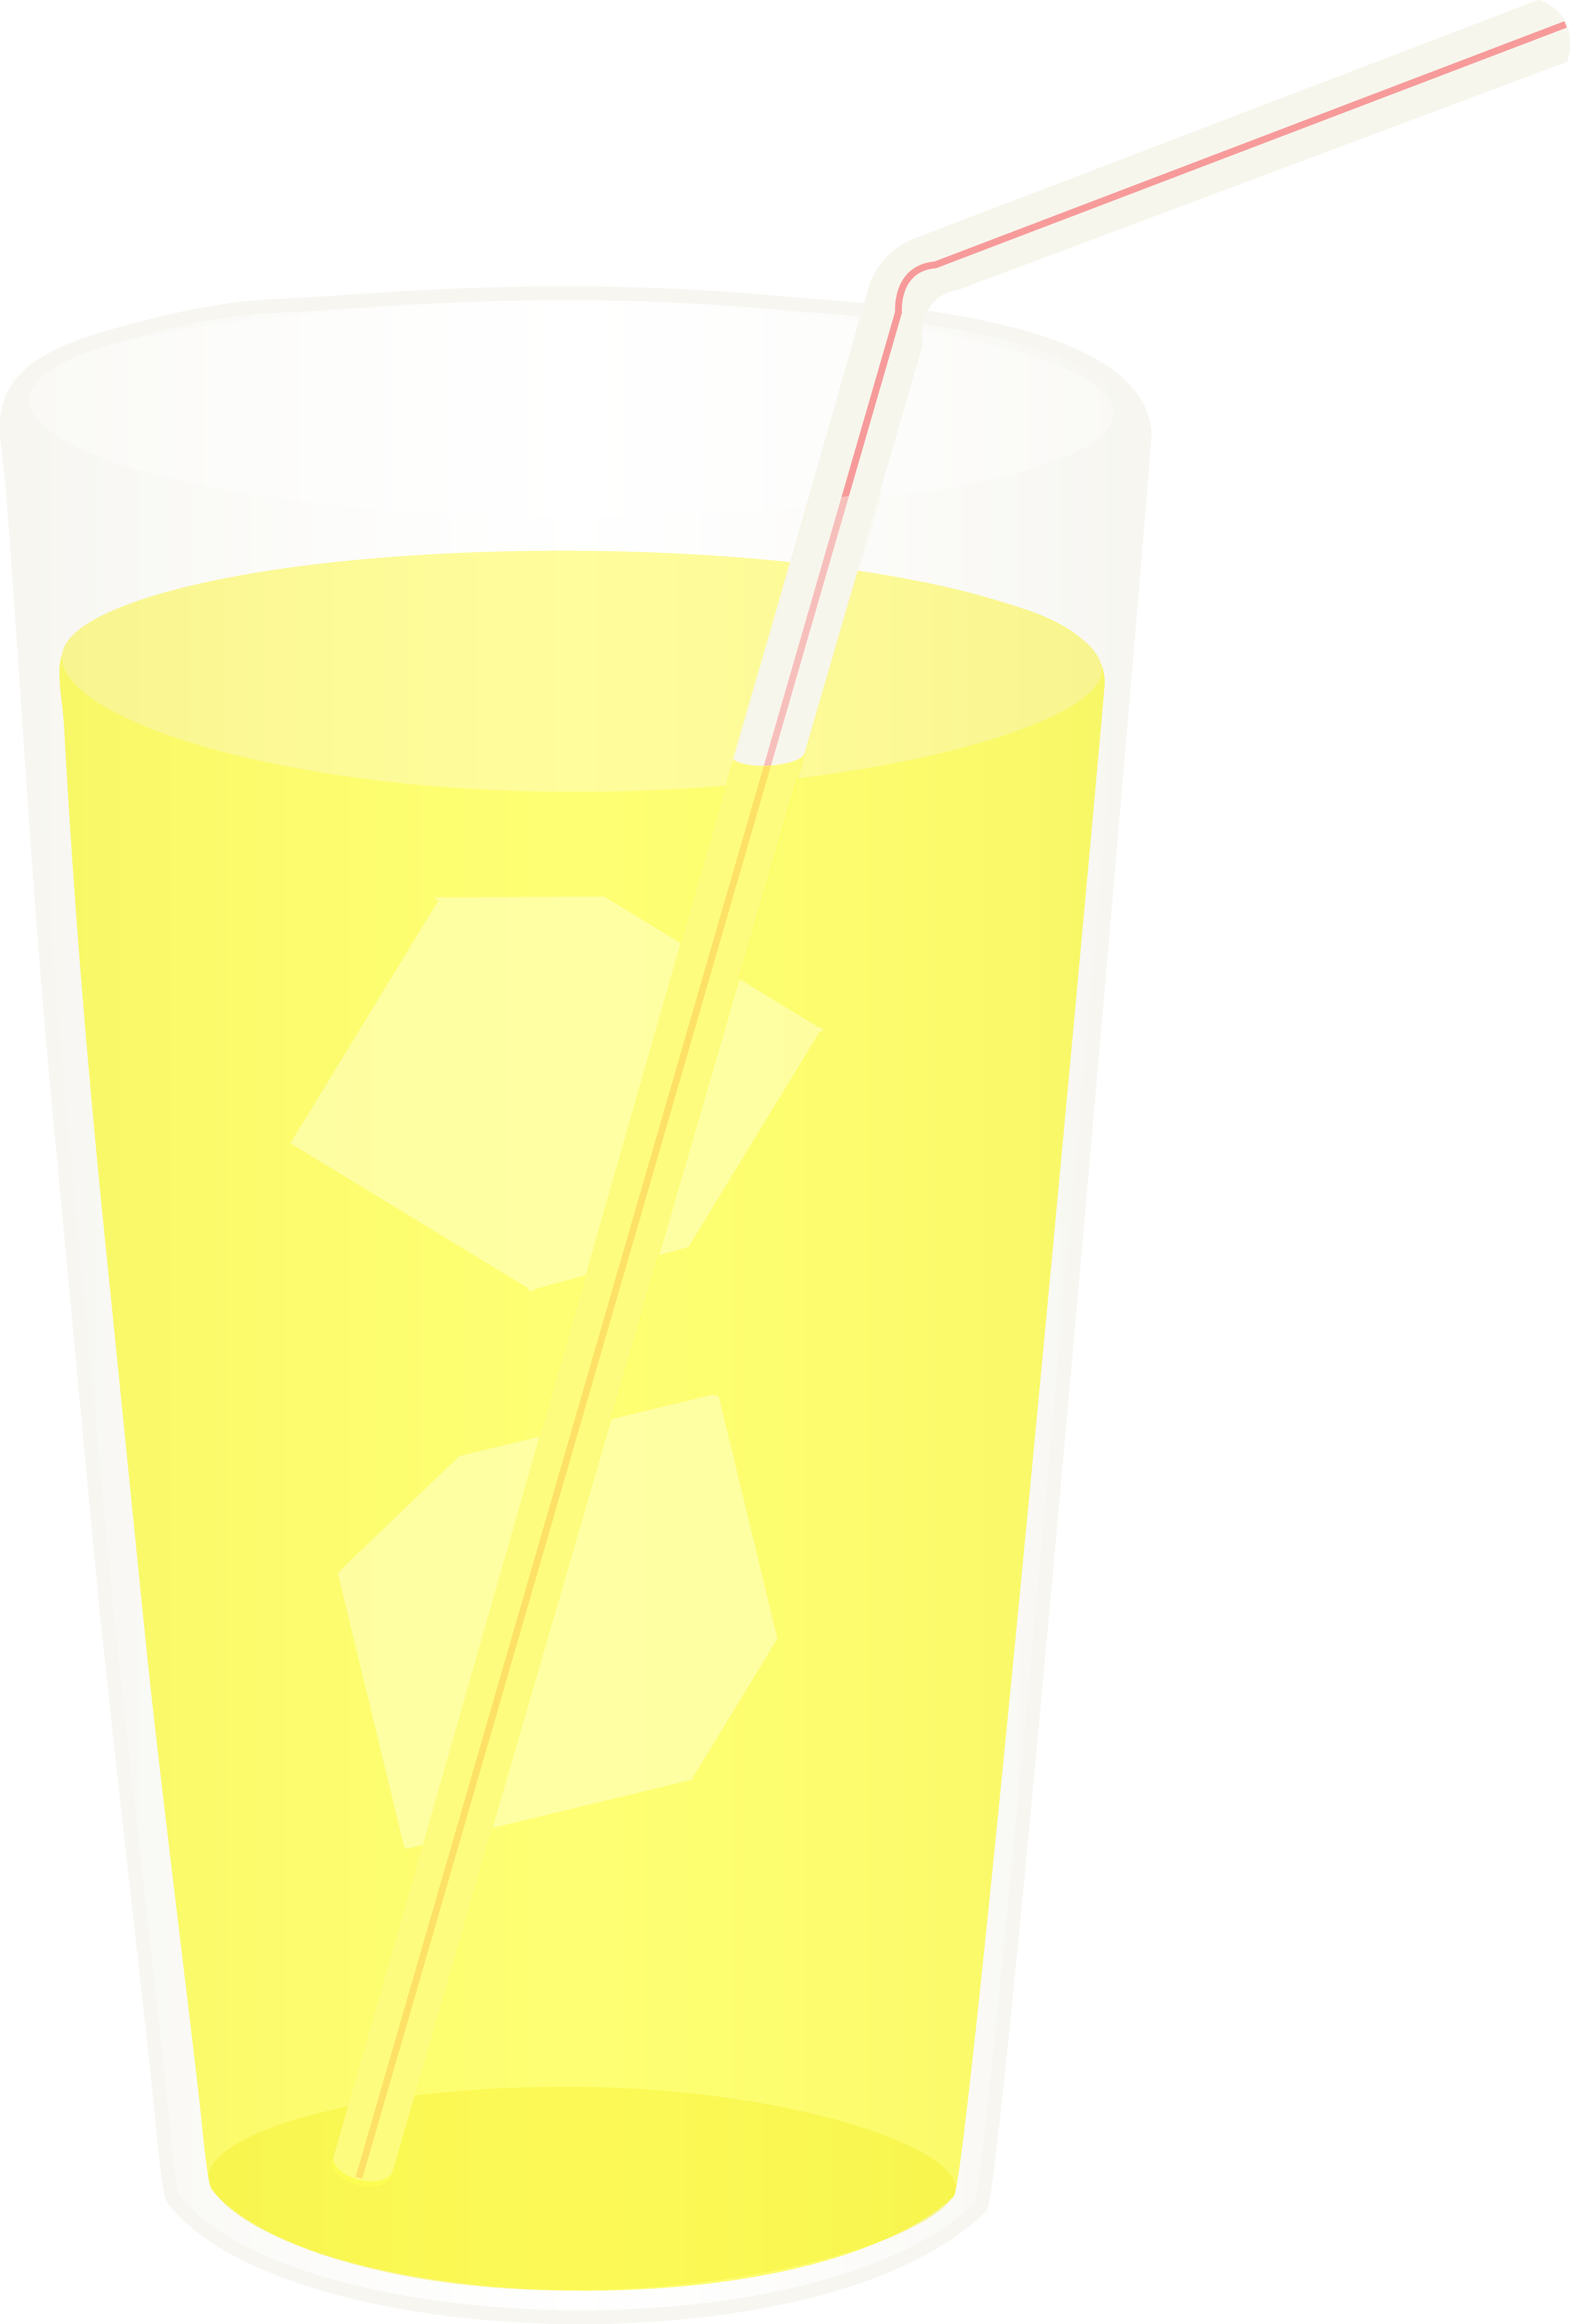 Ice clipart ice drink. Glass of iced lemonade